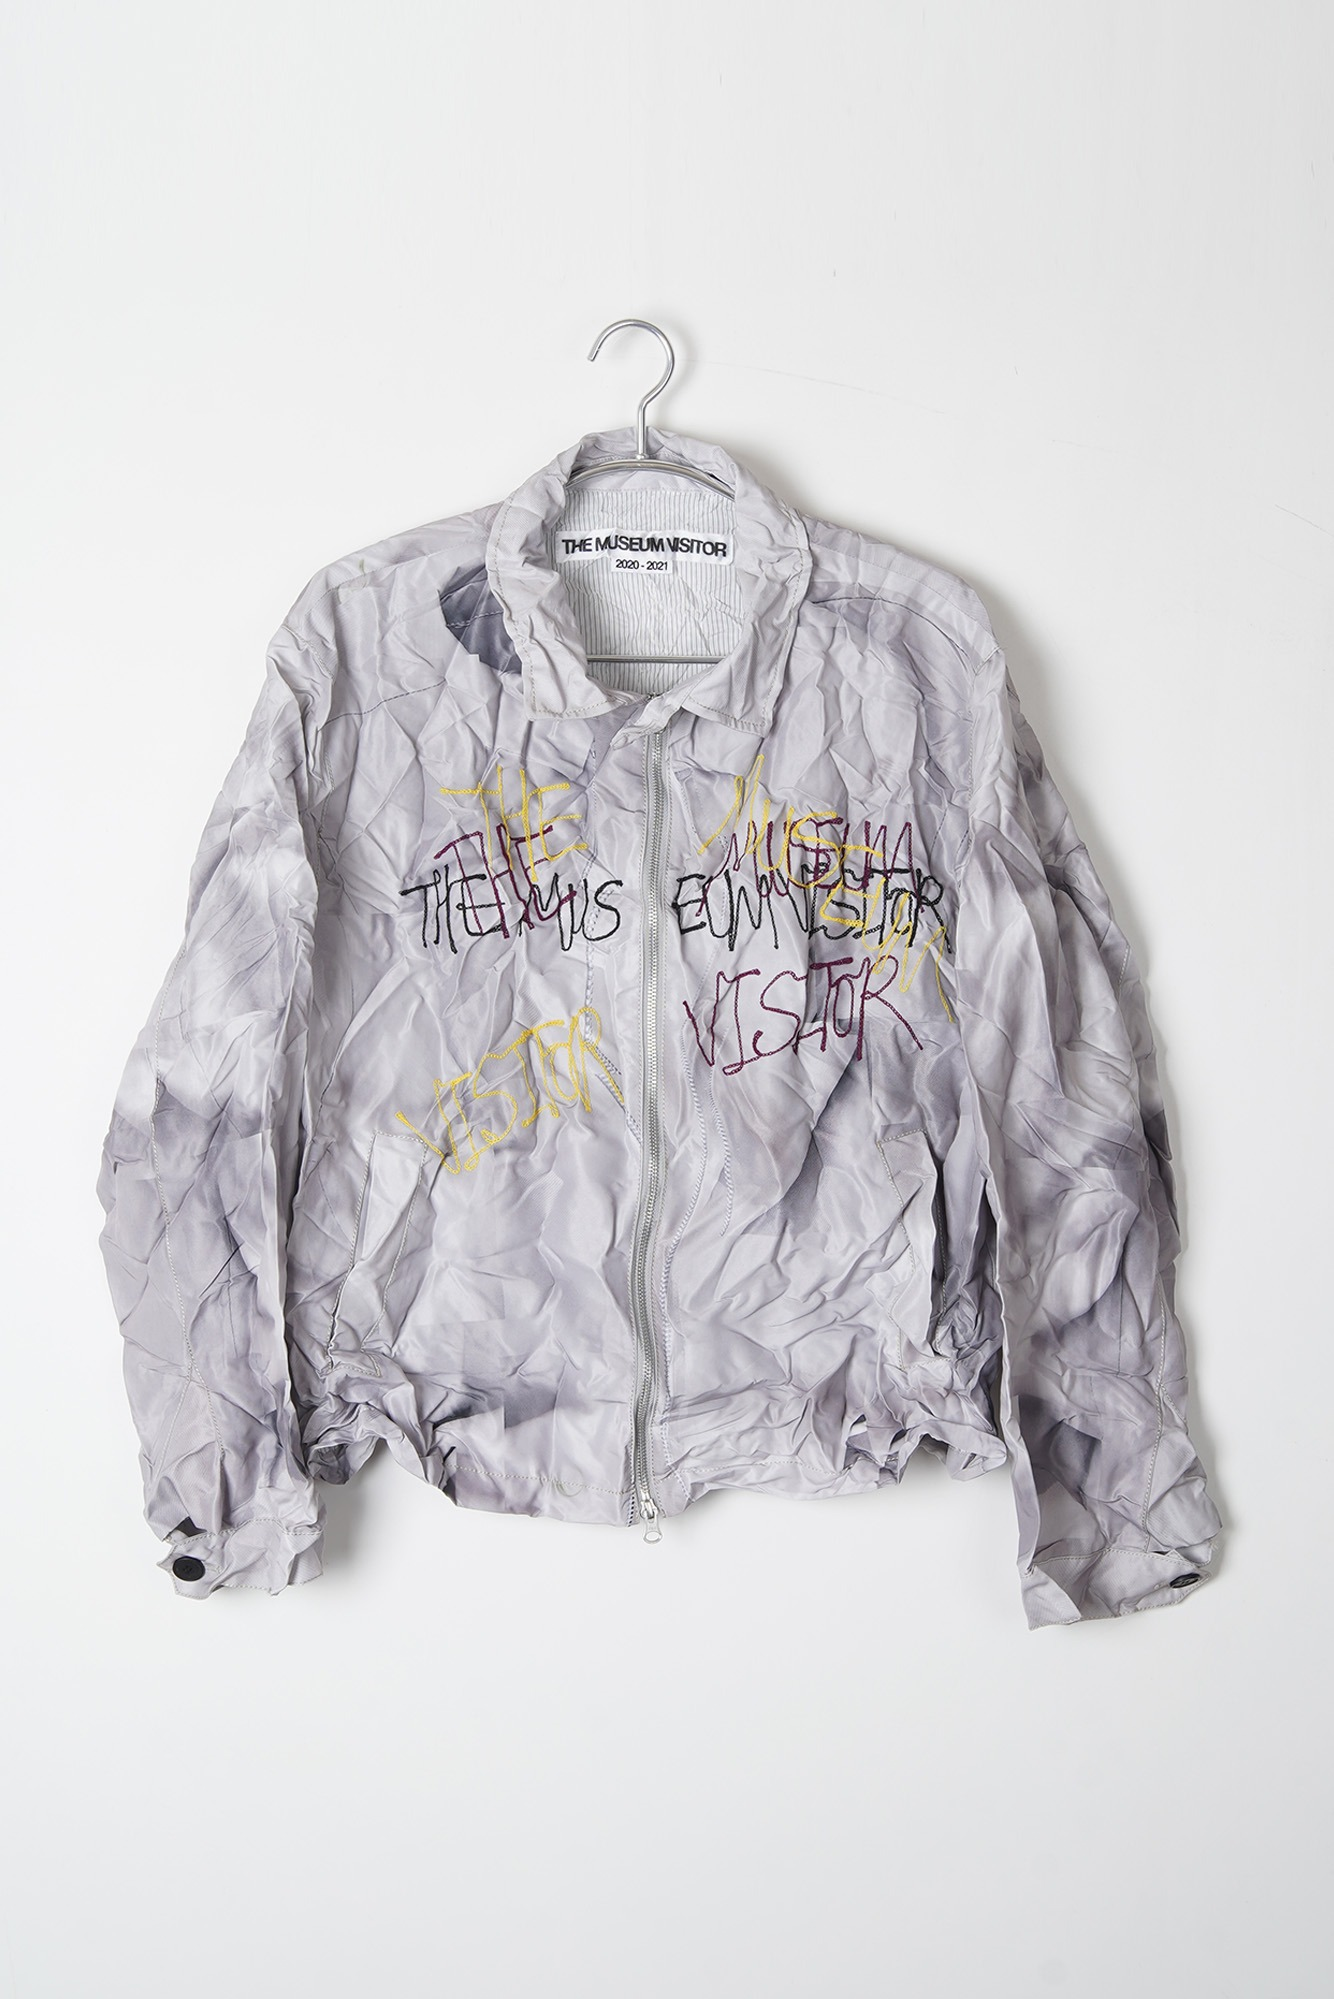 THE MUSEUM VISITOR Twill Printed Jacket